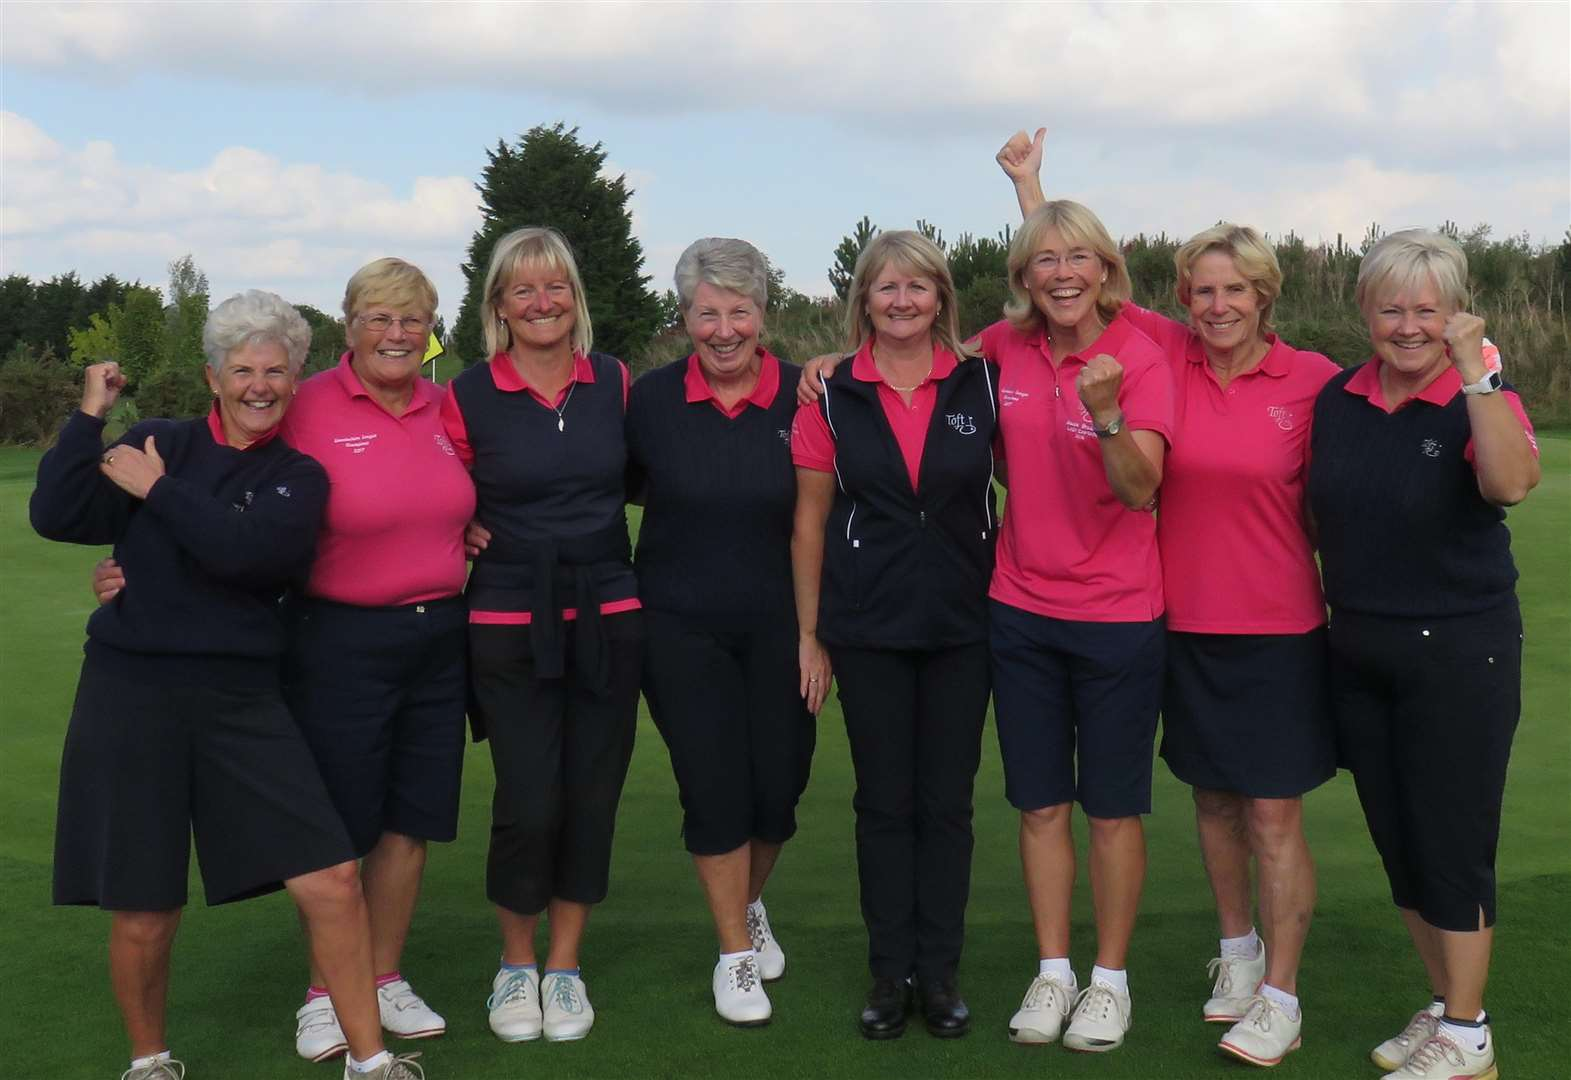 GOLF: Back-to-back titles for Toft after sudden death delight